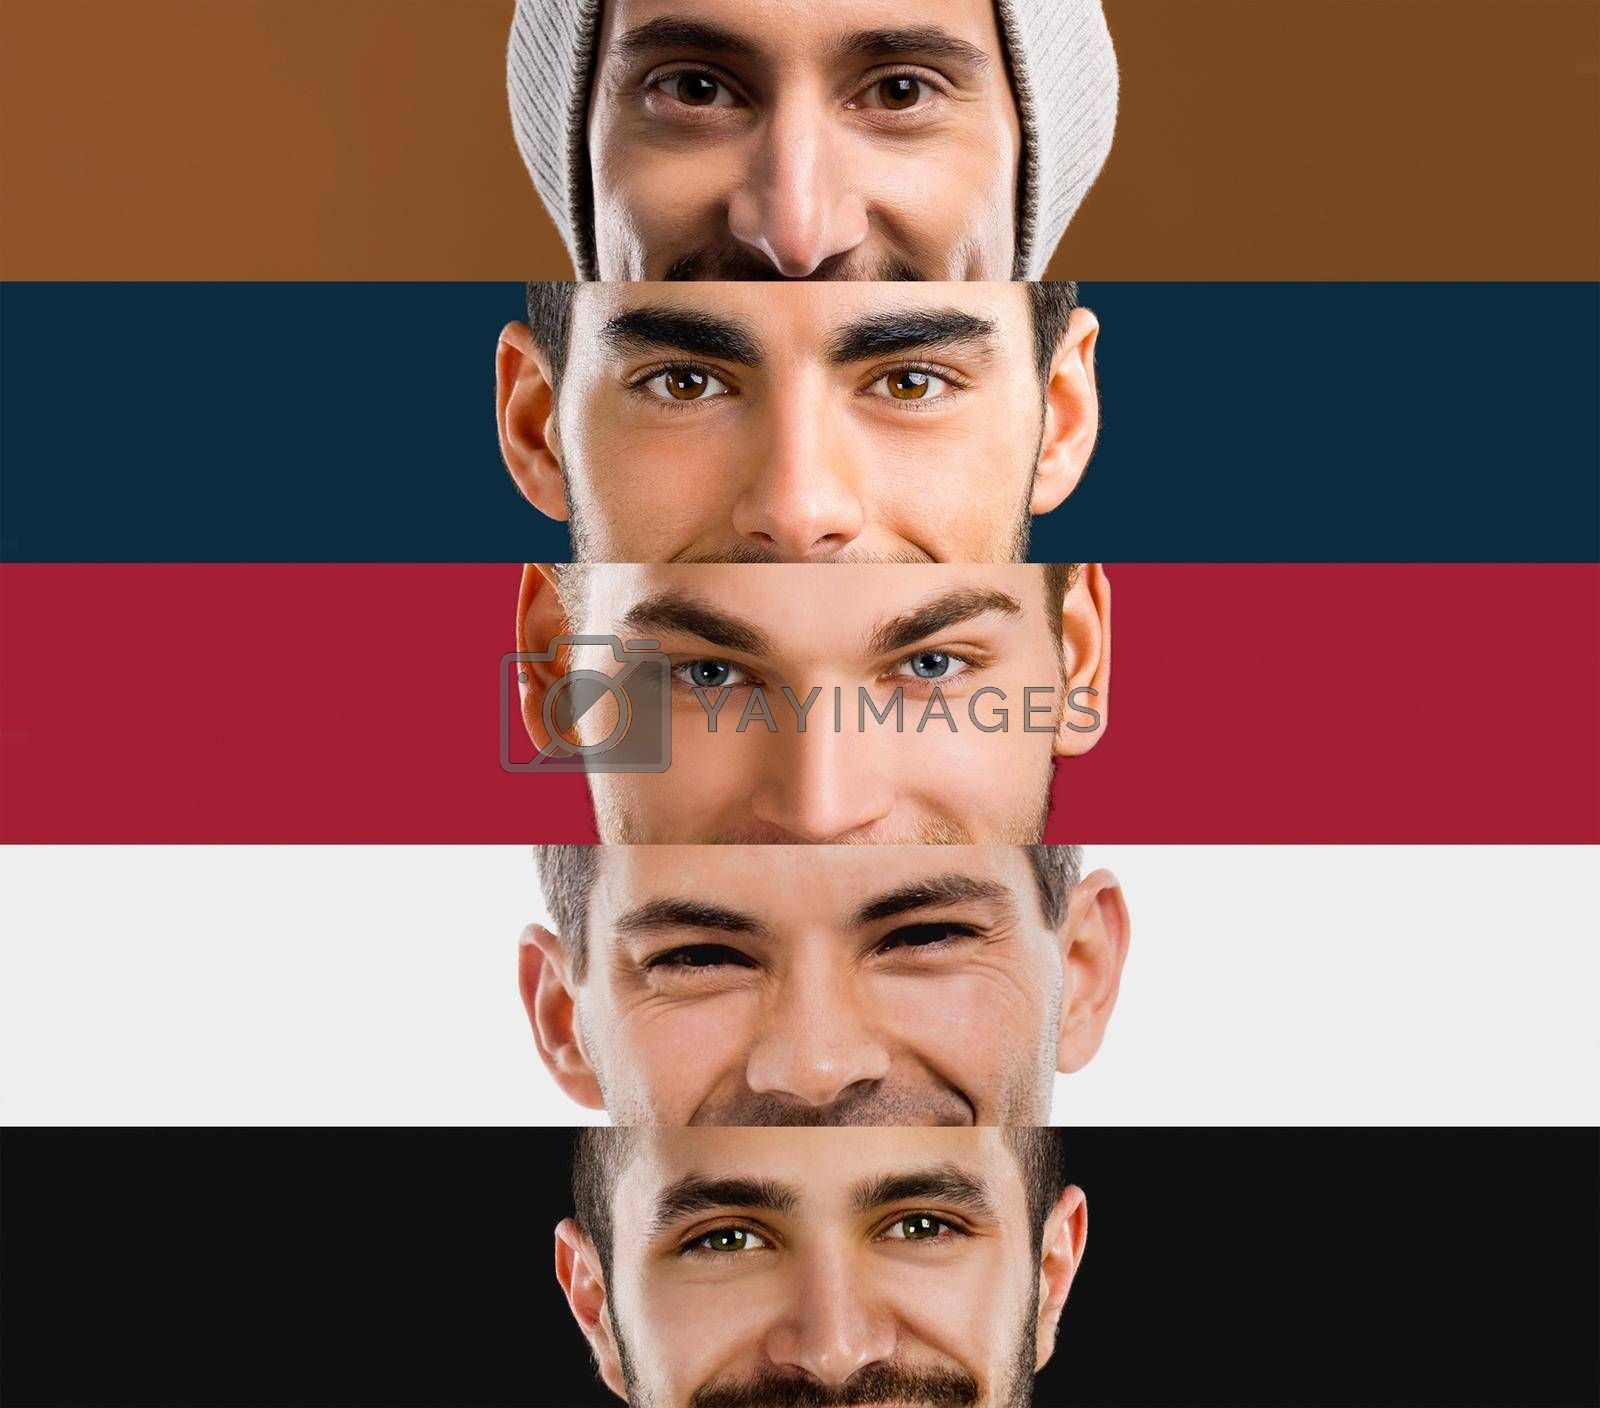 Royalty free image of Multiple portraits of young men's by Iko